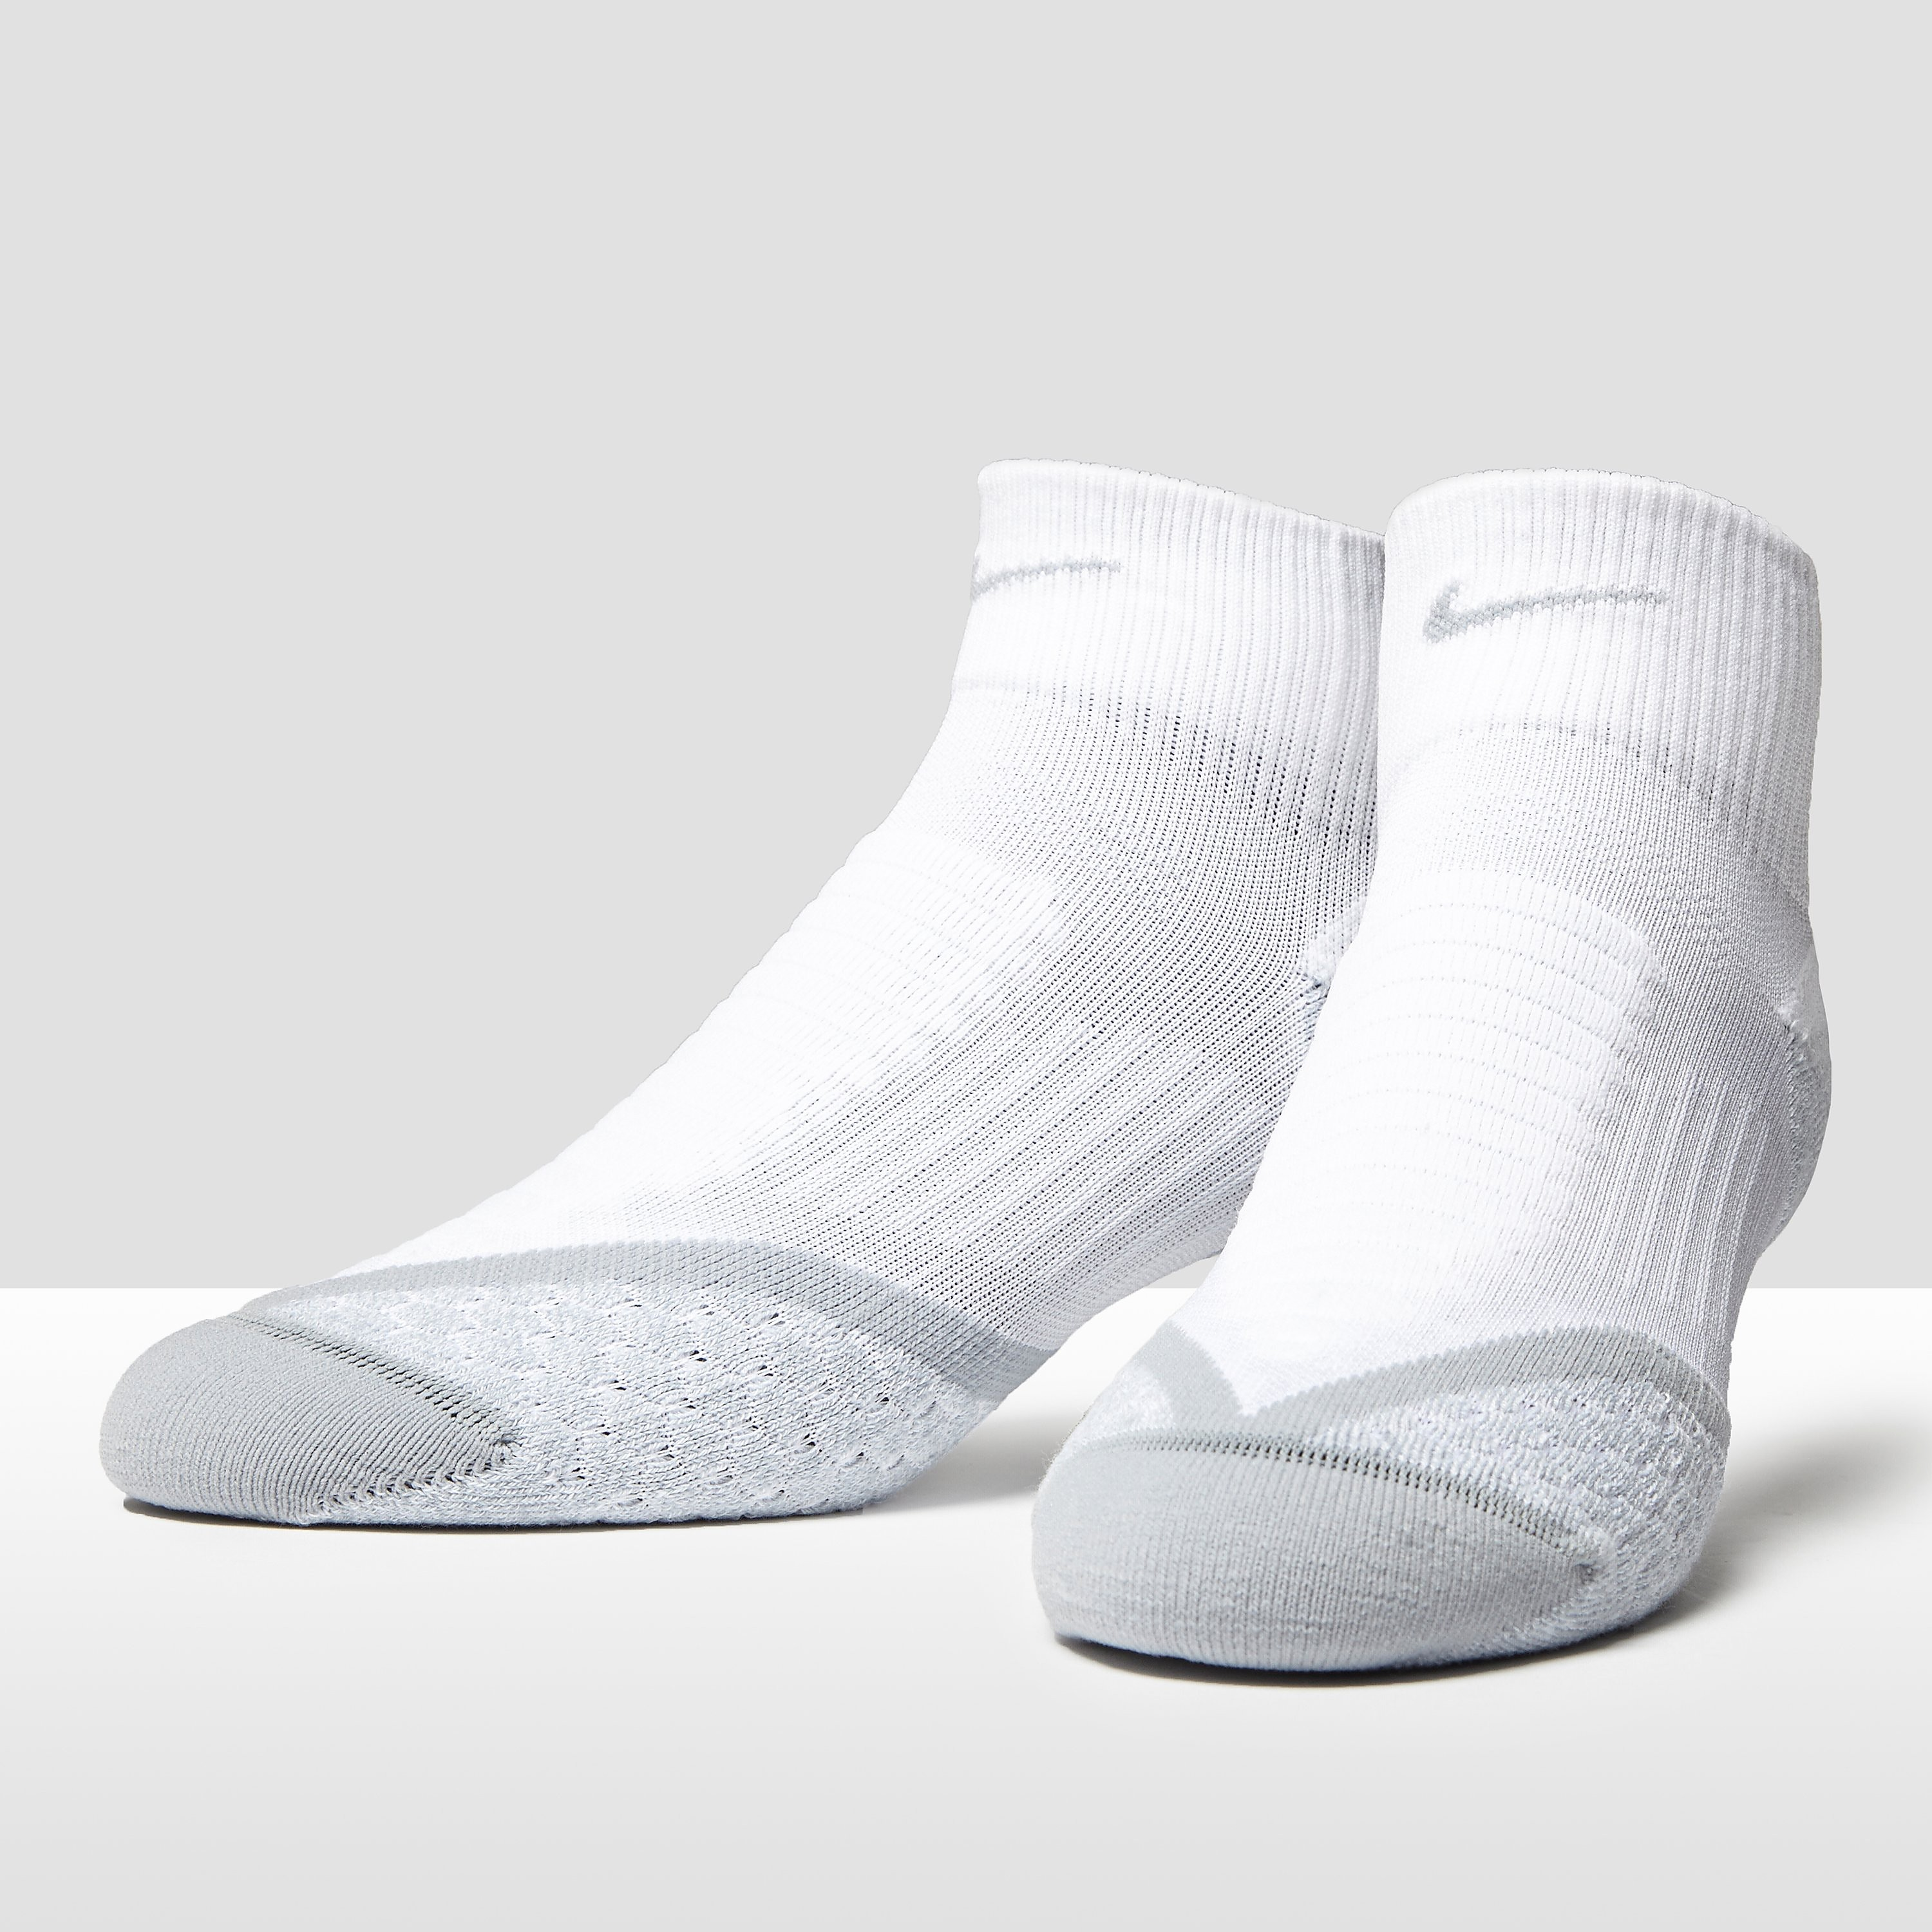 Nike Elite Cushion Crew Running Socks